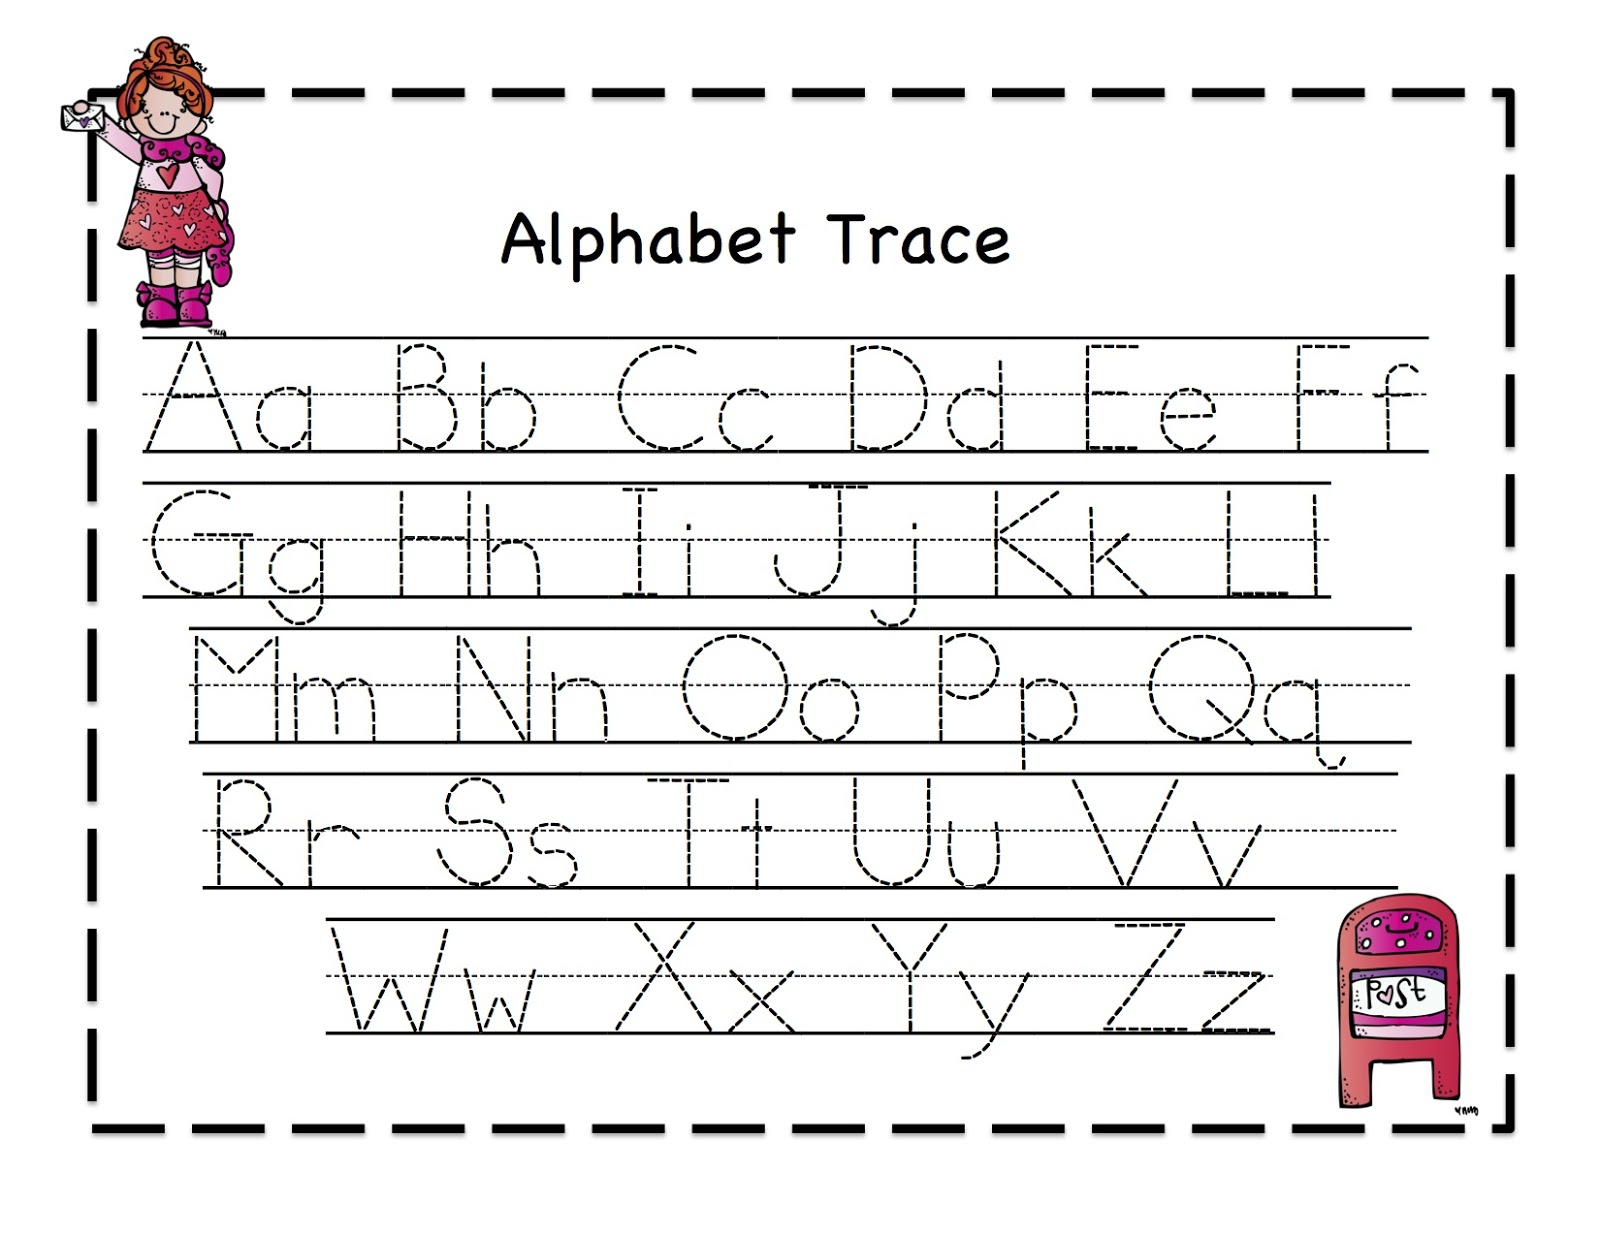 Letter Tracing Sheets Printable | Activity Shelter throughout Alphabet Tracing Activities For Preschoolers